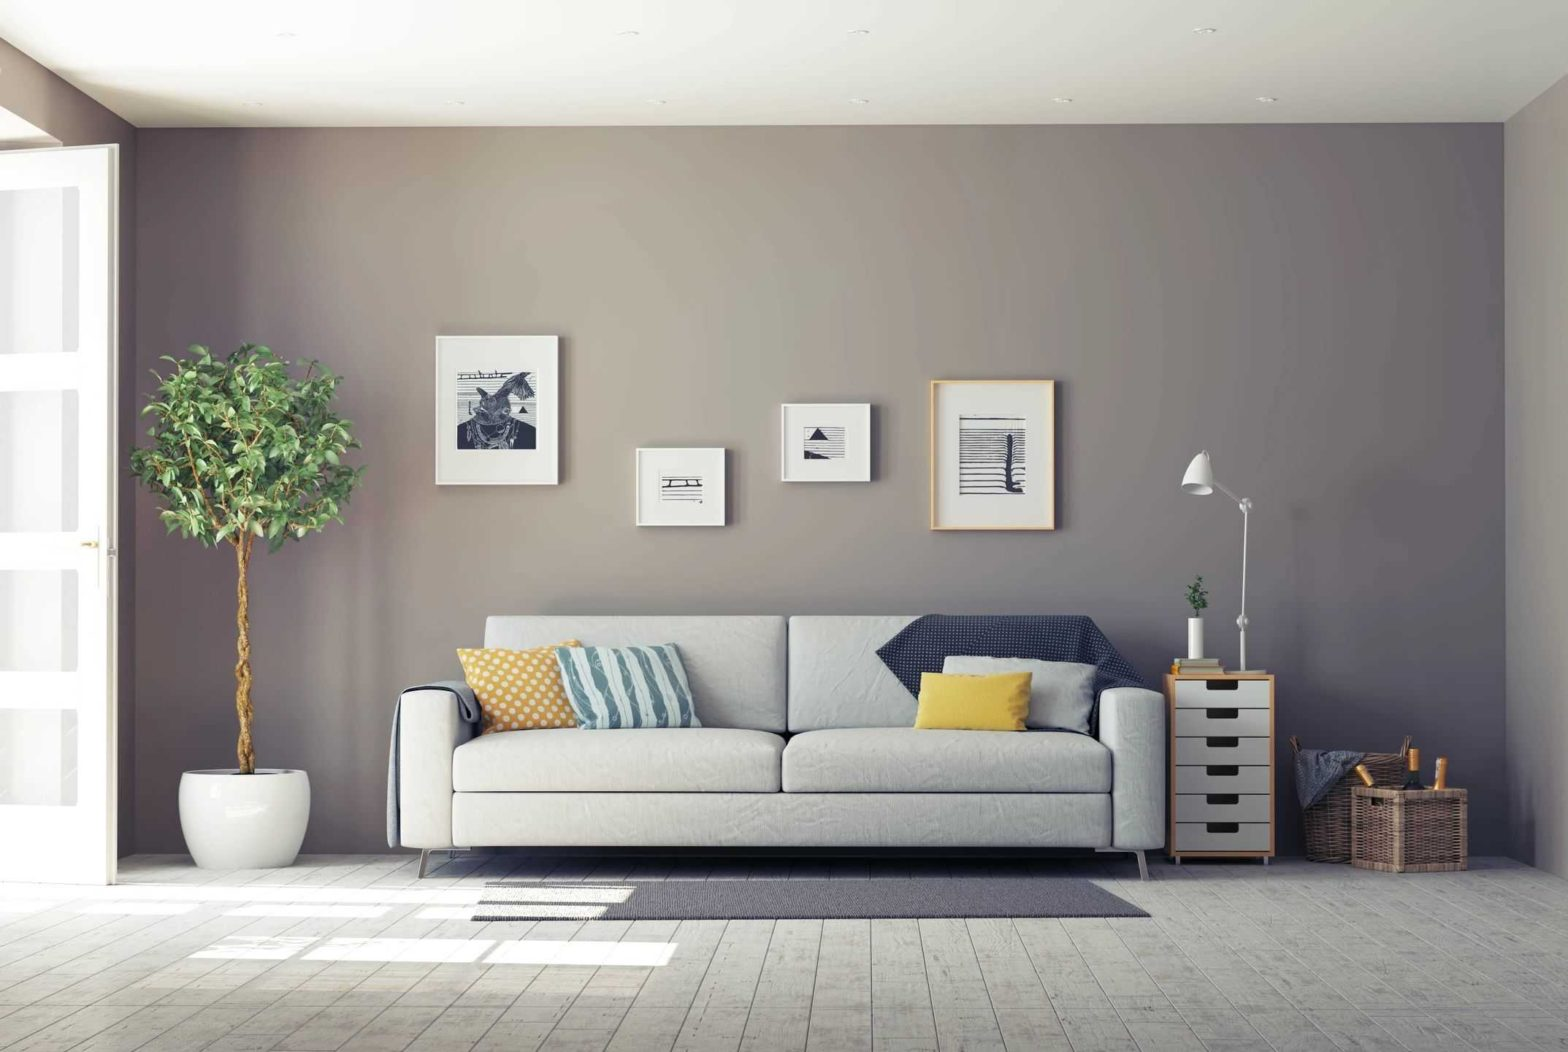 Painting services in Toronto and Mississauga